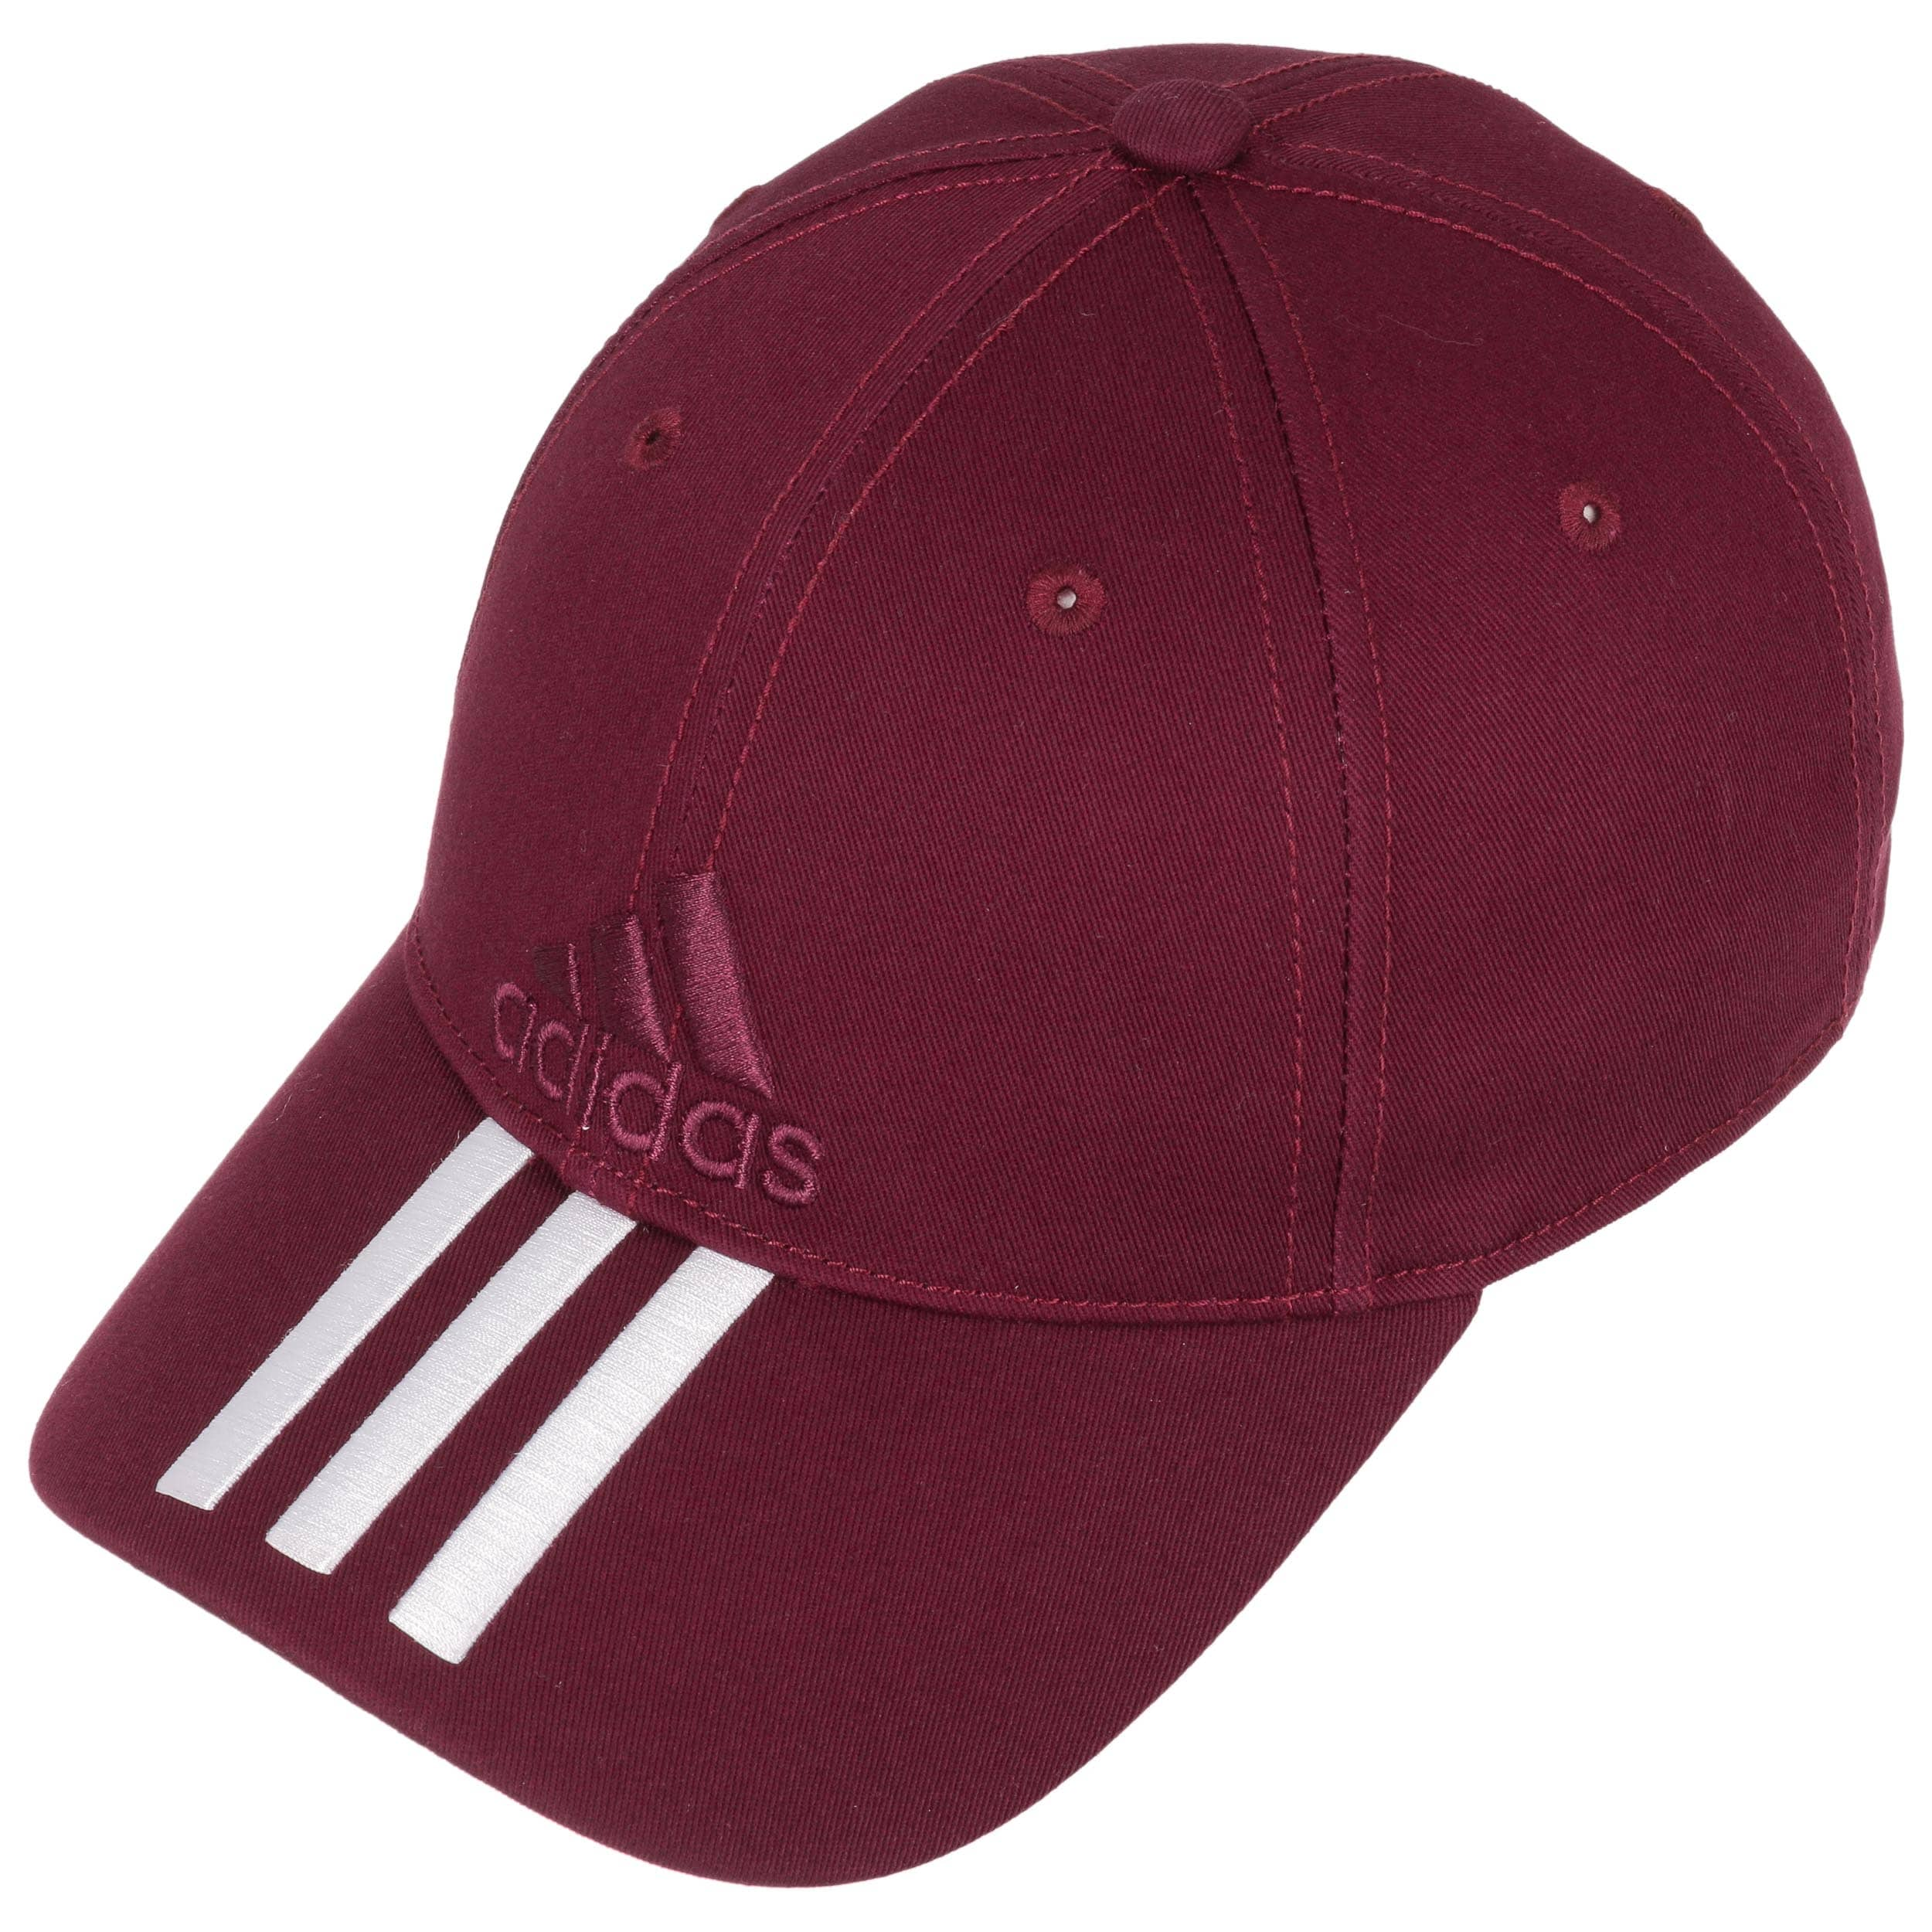 6P 3S Cotton Strapback Cap by adidas - bordeaux 1 ... c779f5353